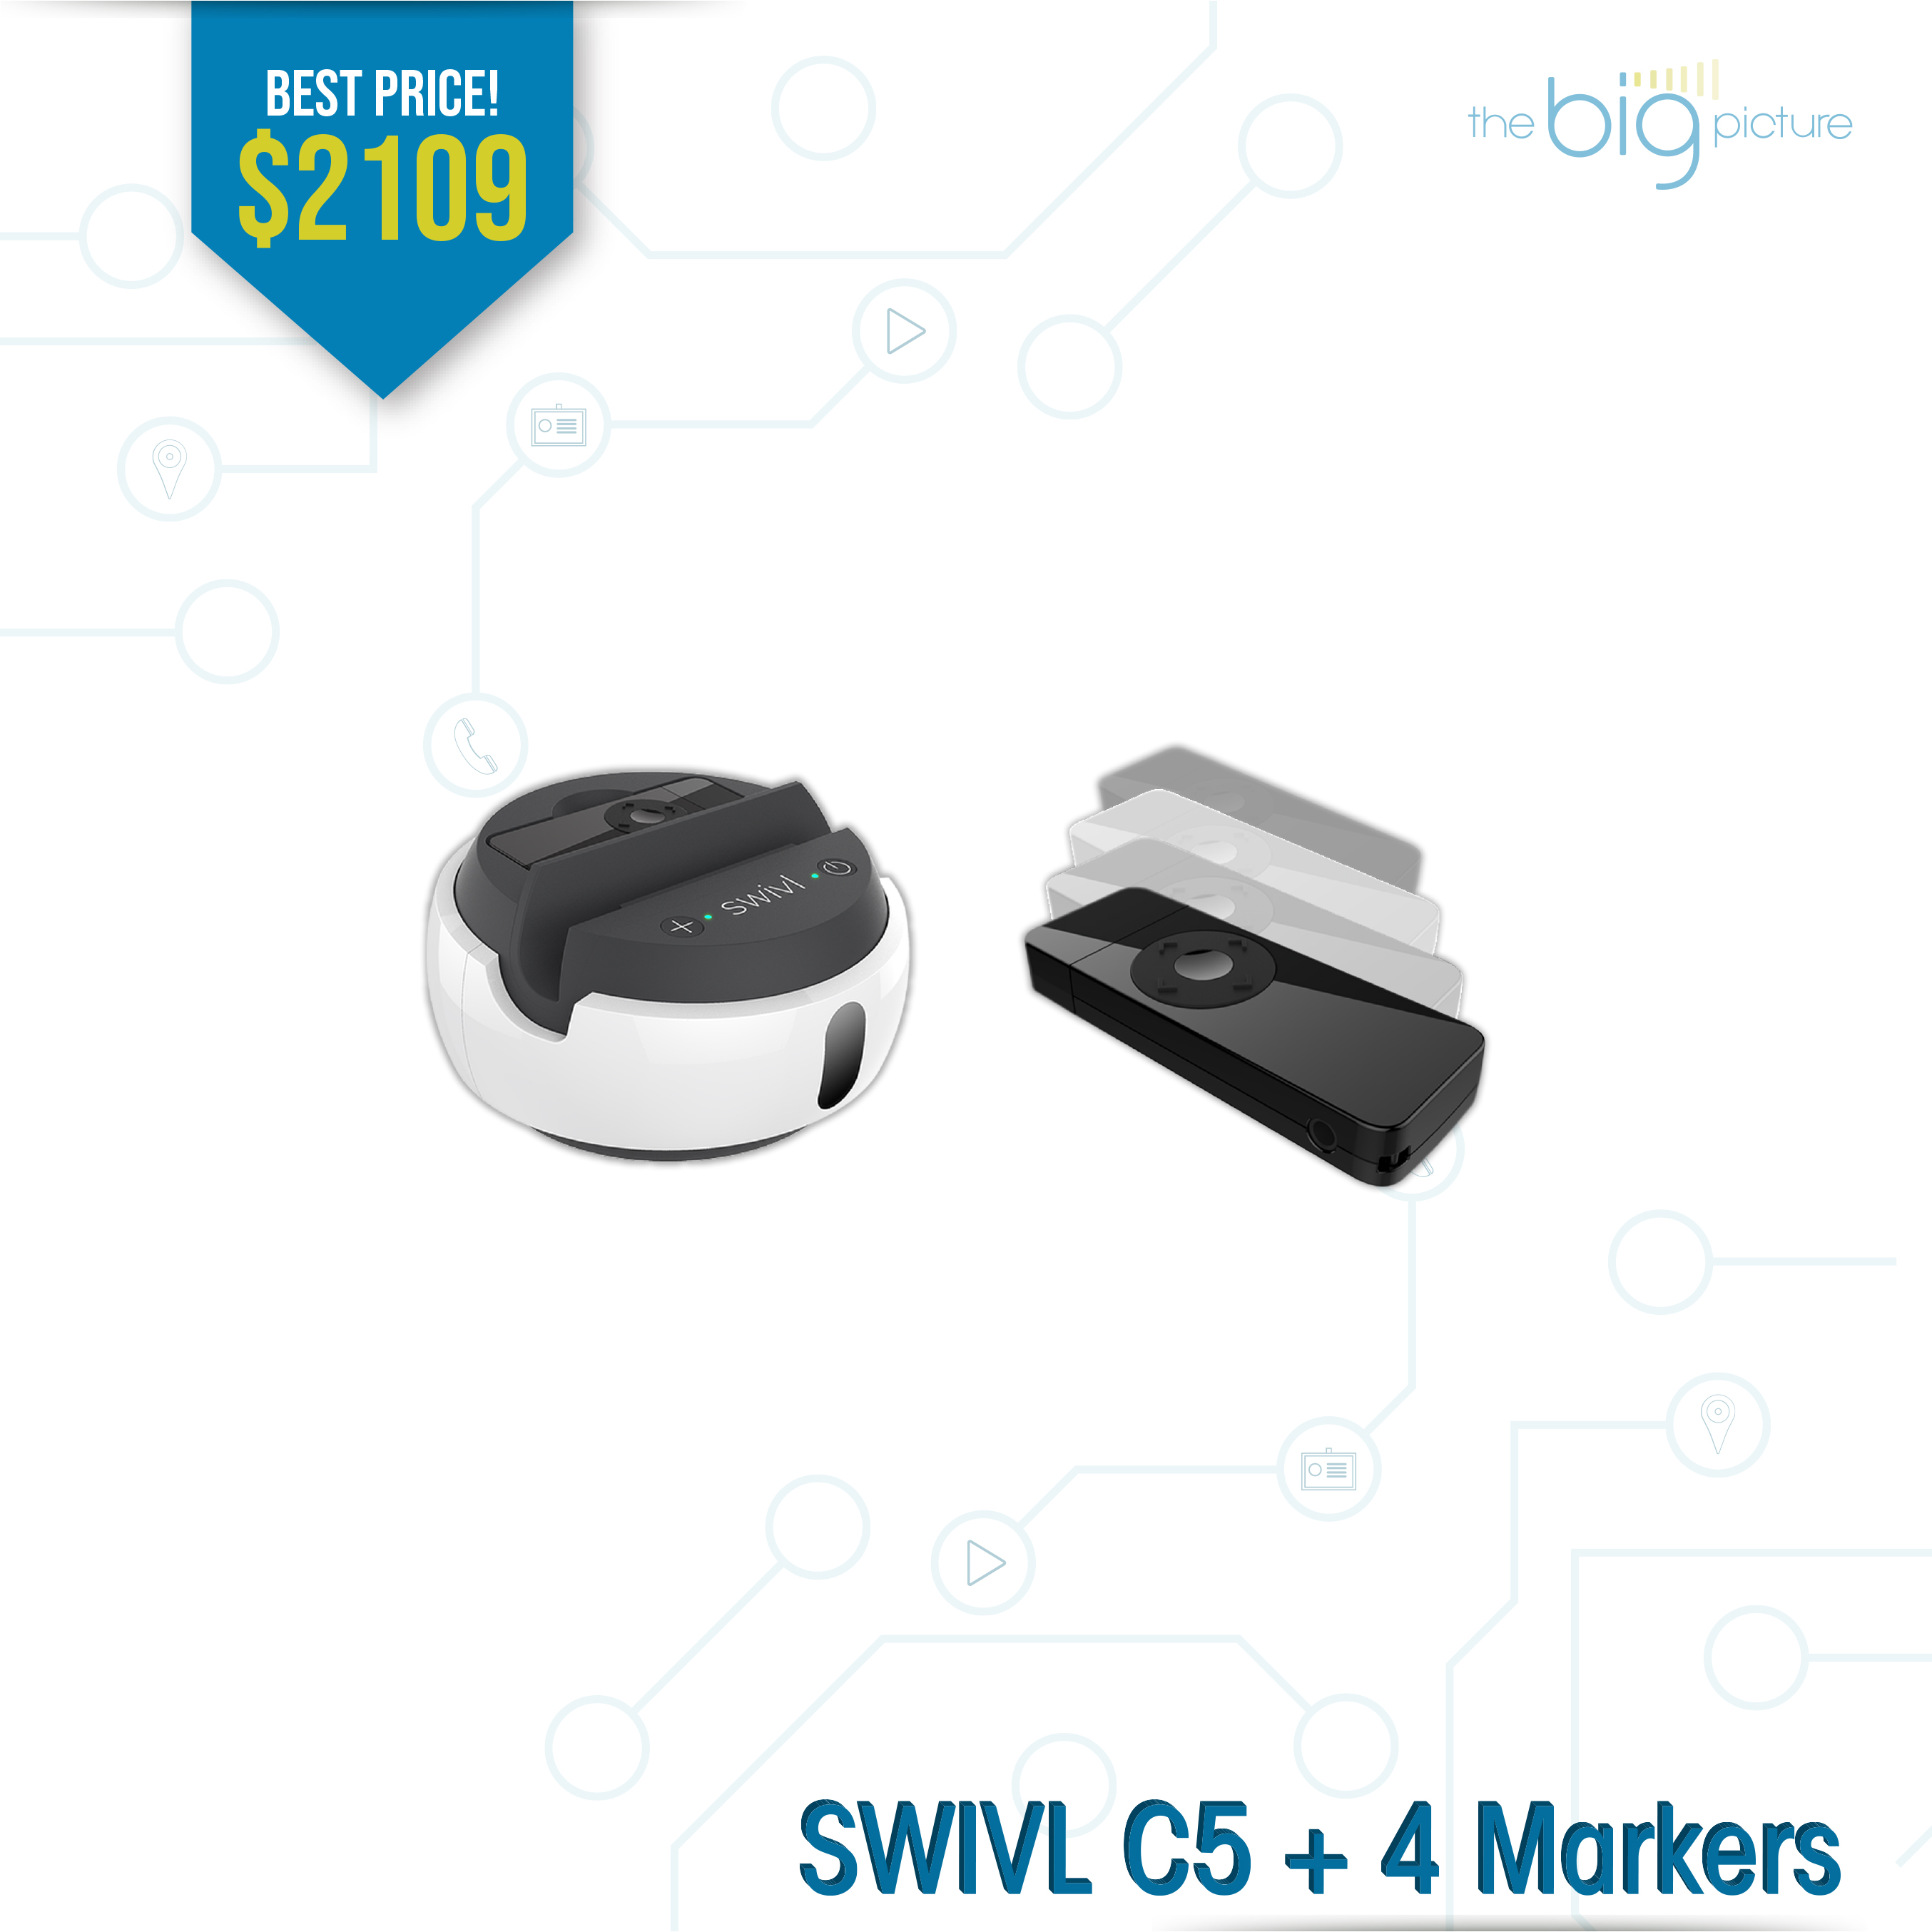 A set of products for SWIVL C5 + 4